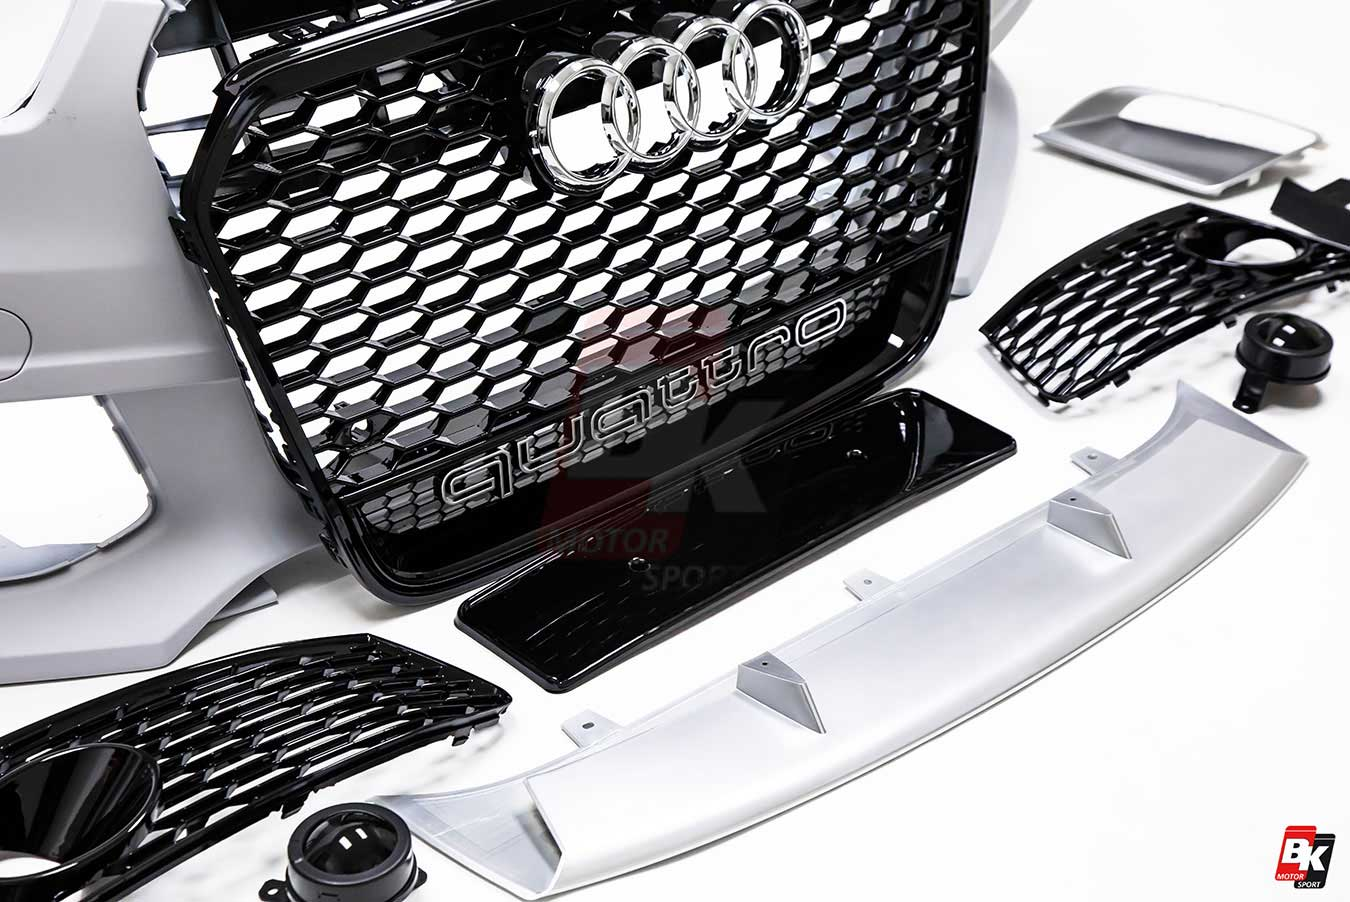 BKM Front Bumper Kit with Front Grille and Rear Diffuser (RS Style on 2007 audi rs, audi tt coupe, audi a5 rs, audi s rs, audi q7 rs, audi quattro rs, 2005 audi rs, audi a7 rs, audi rs 10, audi rs6 avant usa, audi q5 rs, audi a8 rs, audi a4 wagon, 2001 audi rs, audi estate v1.0, audi tt rs, audi r8 rs, audi rs v10, audi a3 rs, audi rs 5 coupe,